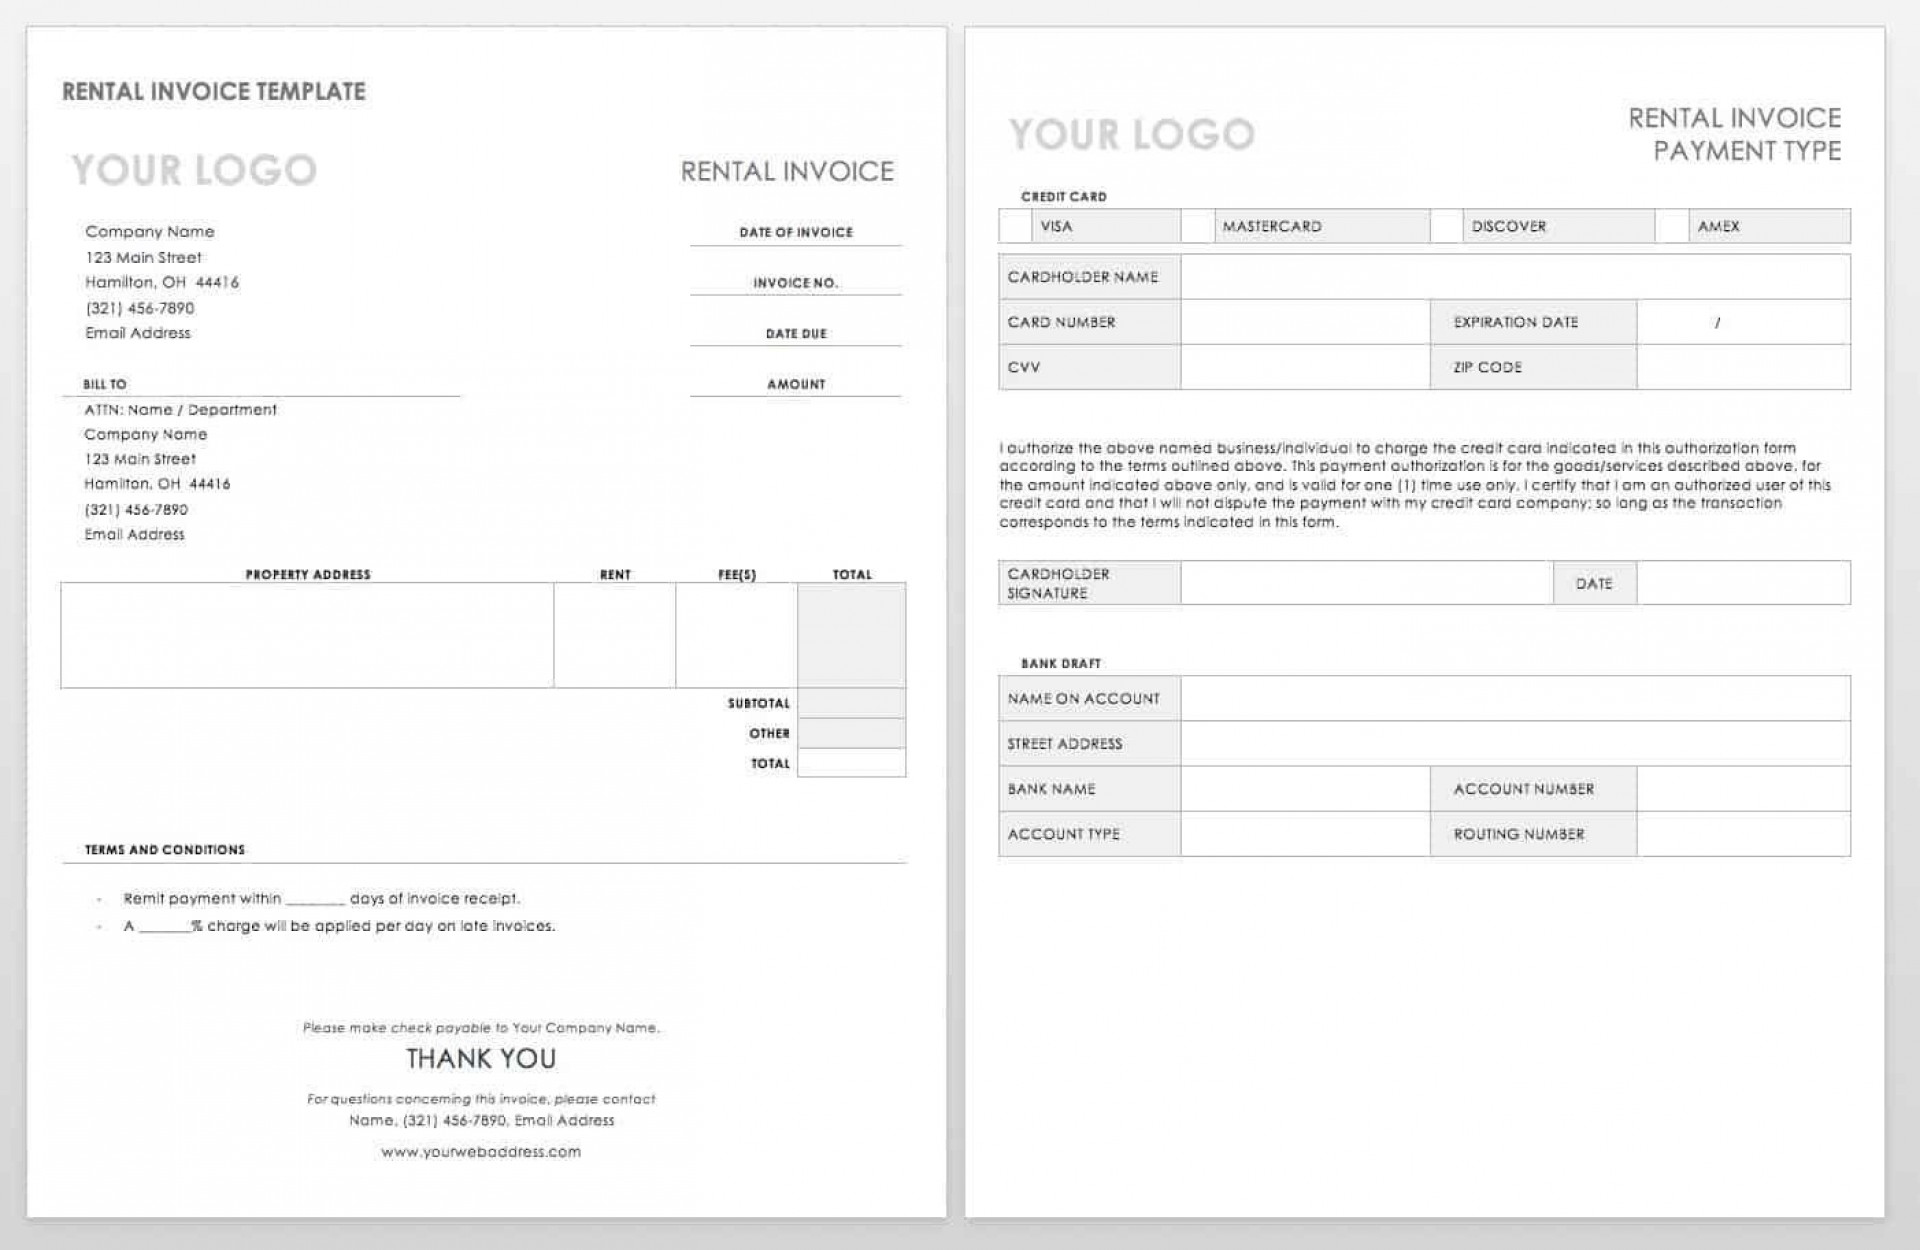 007 Unique House Rent Receipt Template India Doc Example  Format Download1920